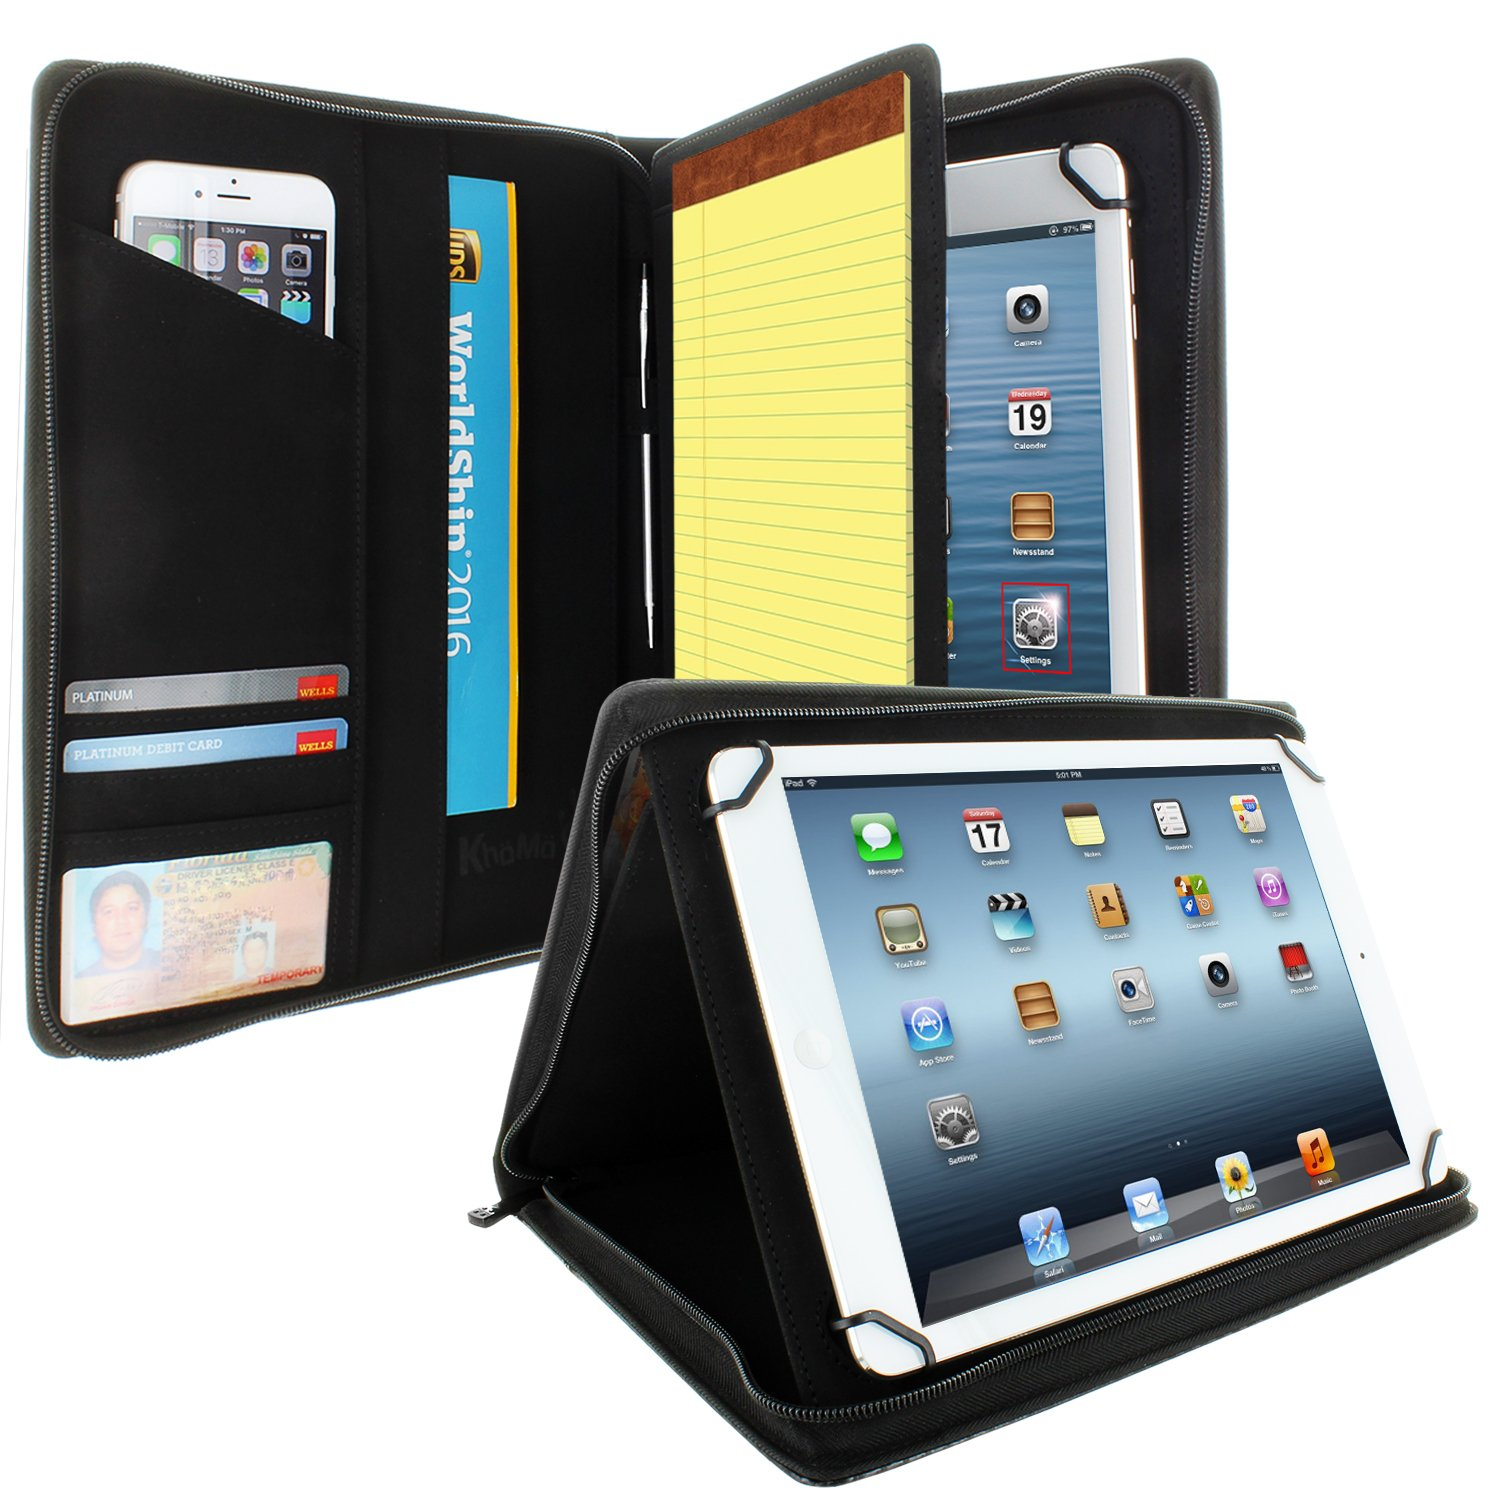 KHOMO Universal Tablet Padfolio Zippered Case for 8.5'' to 11'' Tablets - Carbon Fiber - Compatible with iPad Air, Pro 11 and Many Others